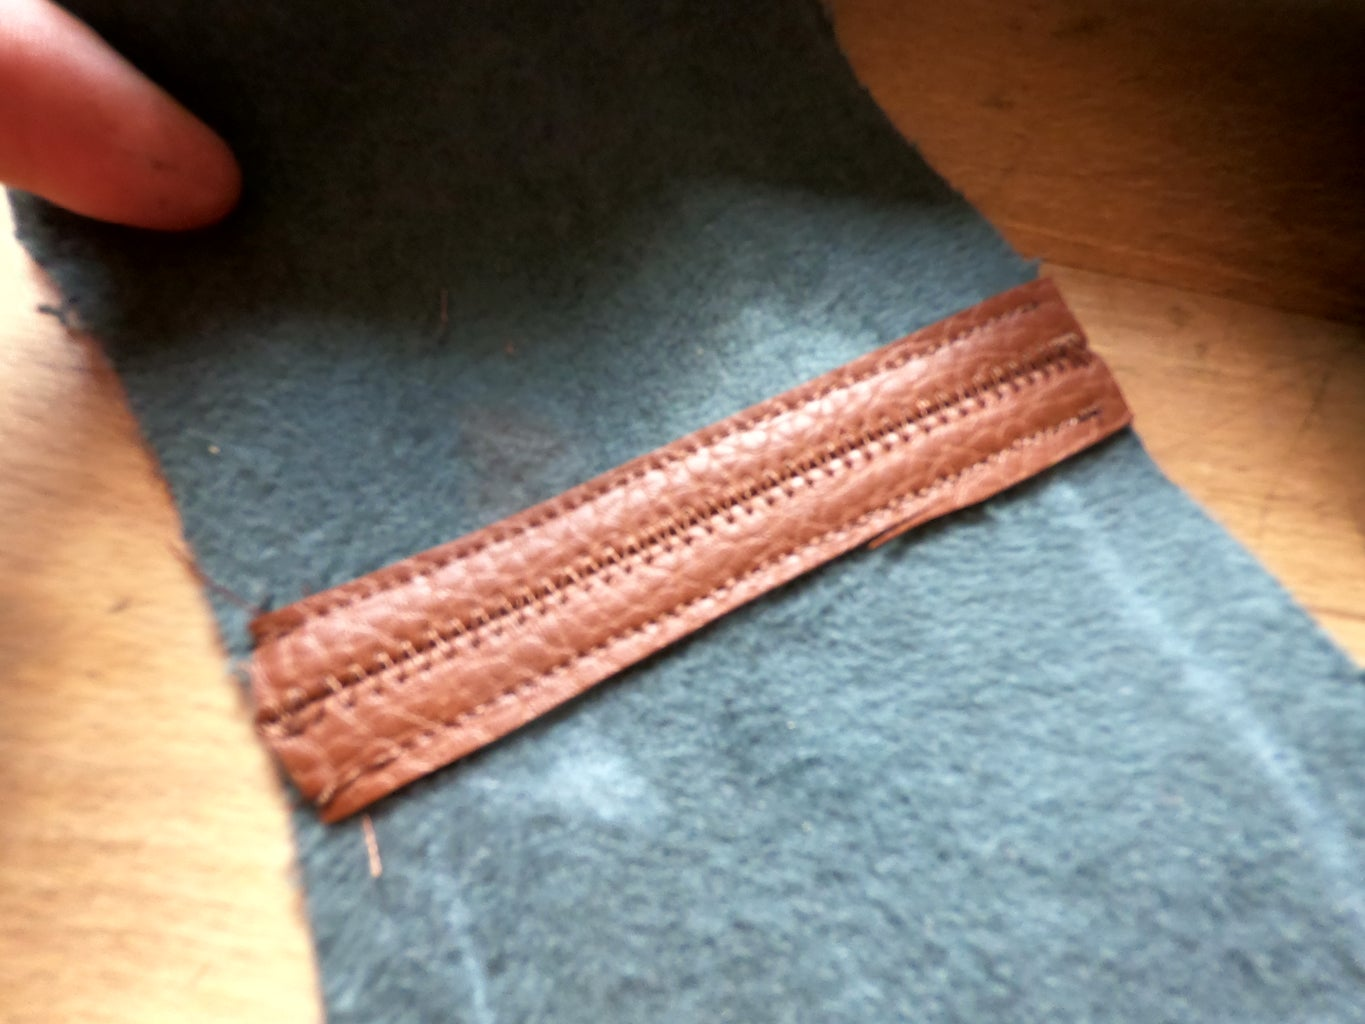 Cut the New Fabric and Start Sewing